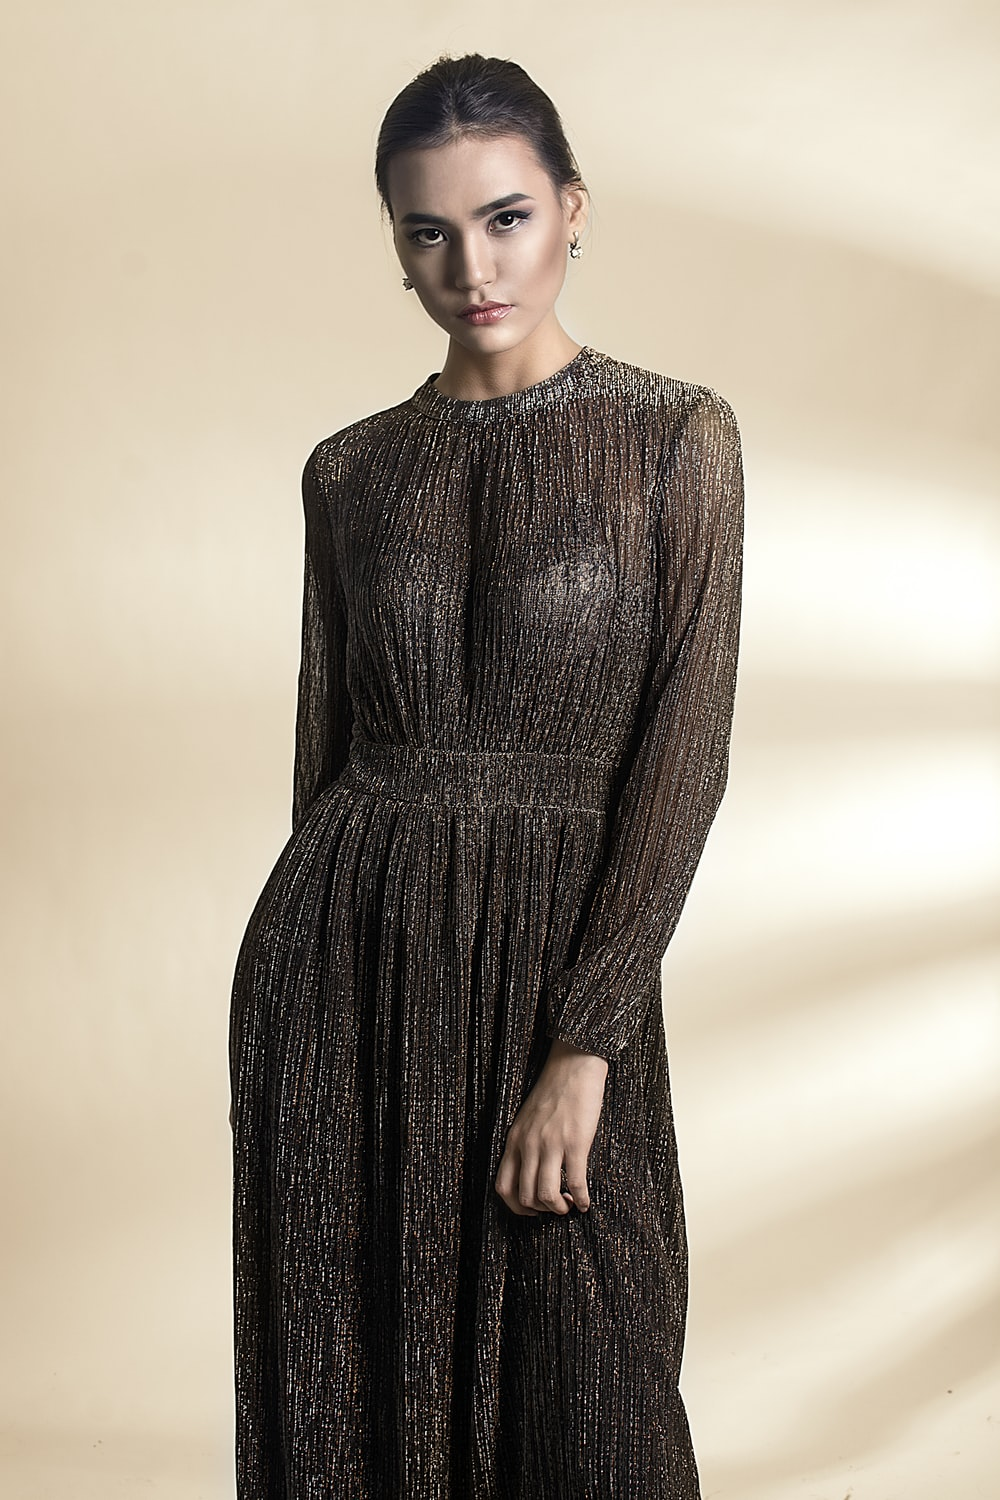 woman in black long-sleeved glittered dress posing beside wall